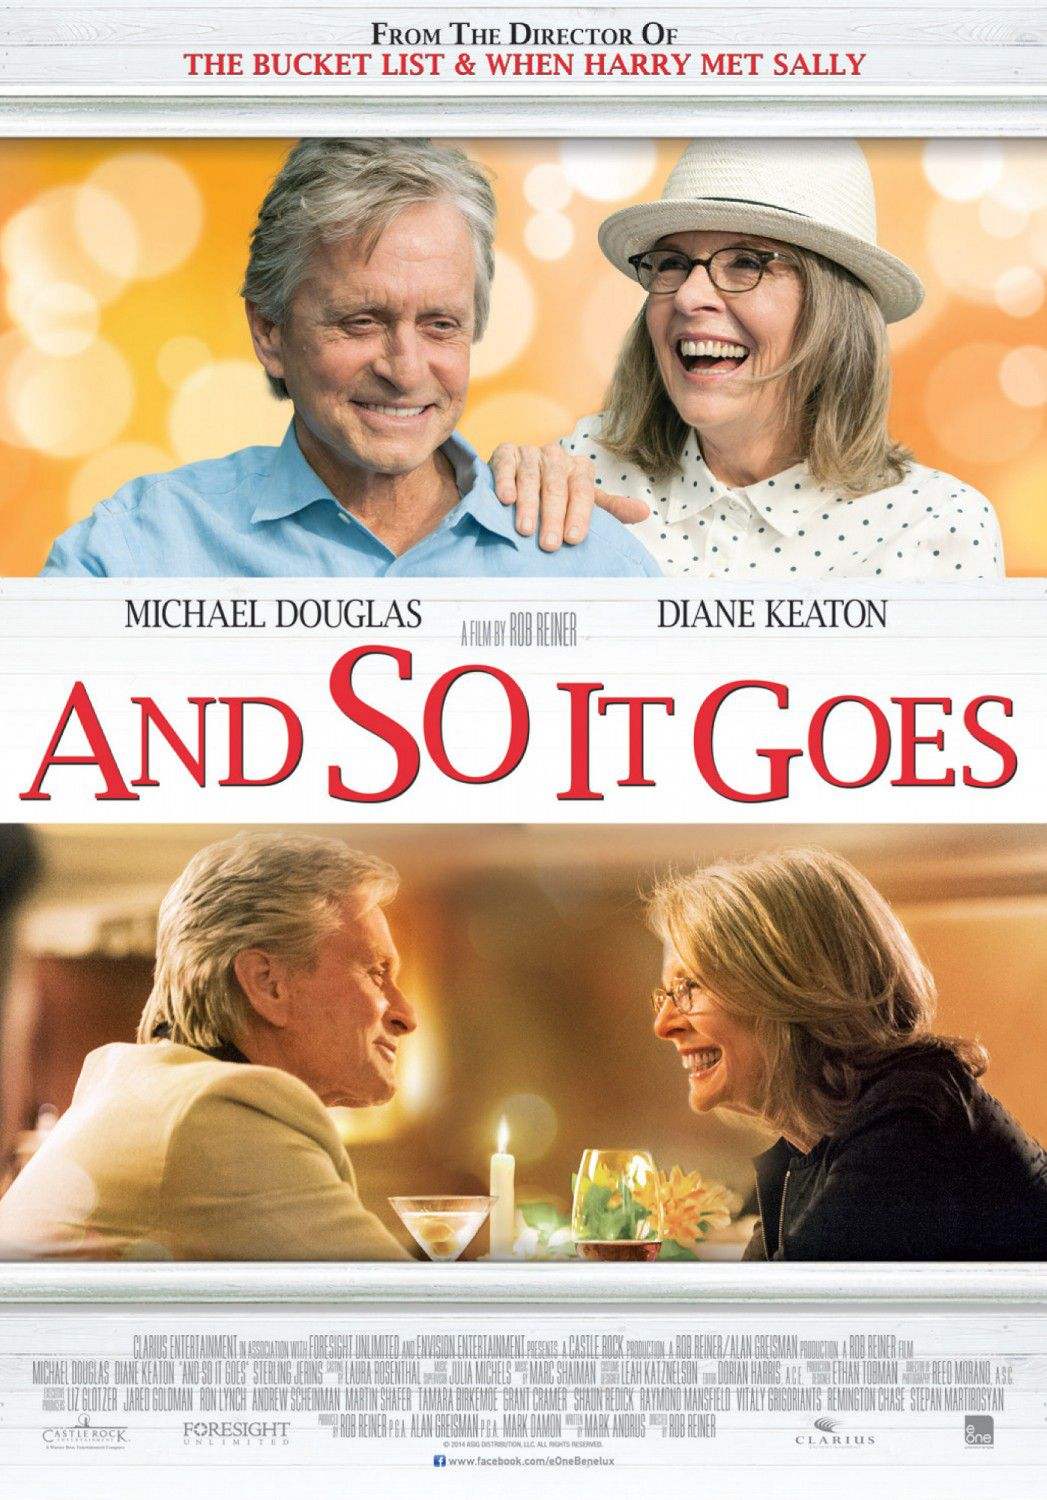 Mai così Vicini - Juntos pero no Tanto - And so it goes - Romance - Diane Keaton - Michael Douglas - film poster